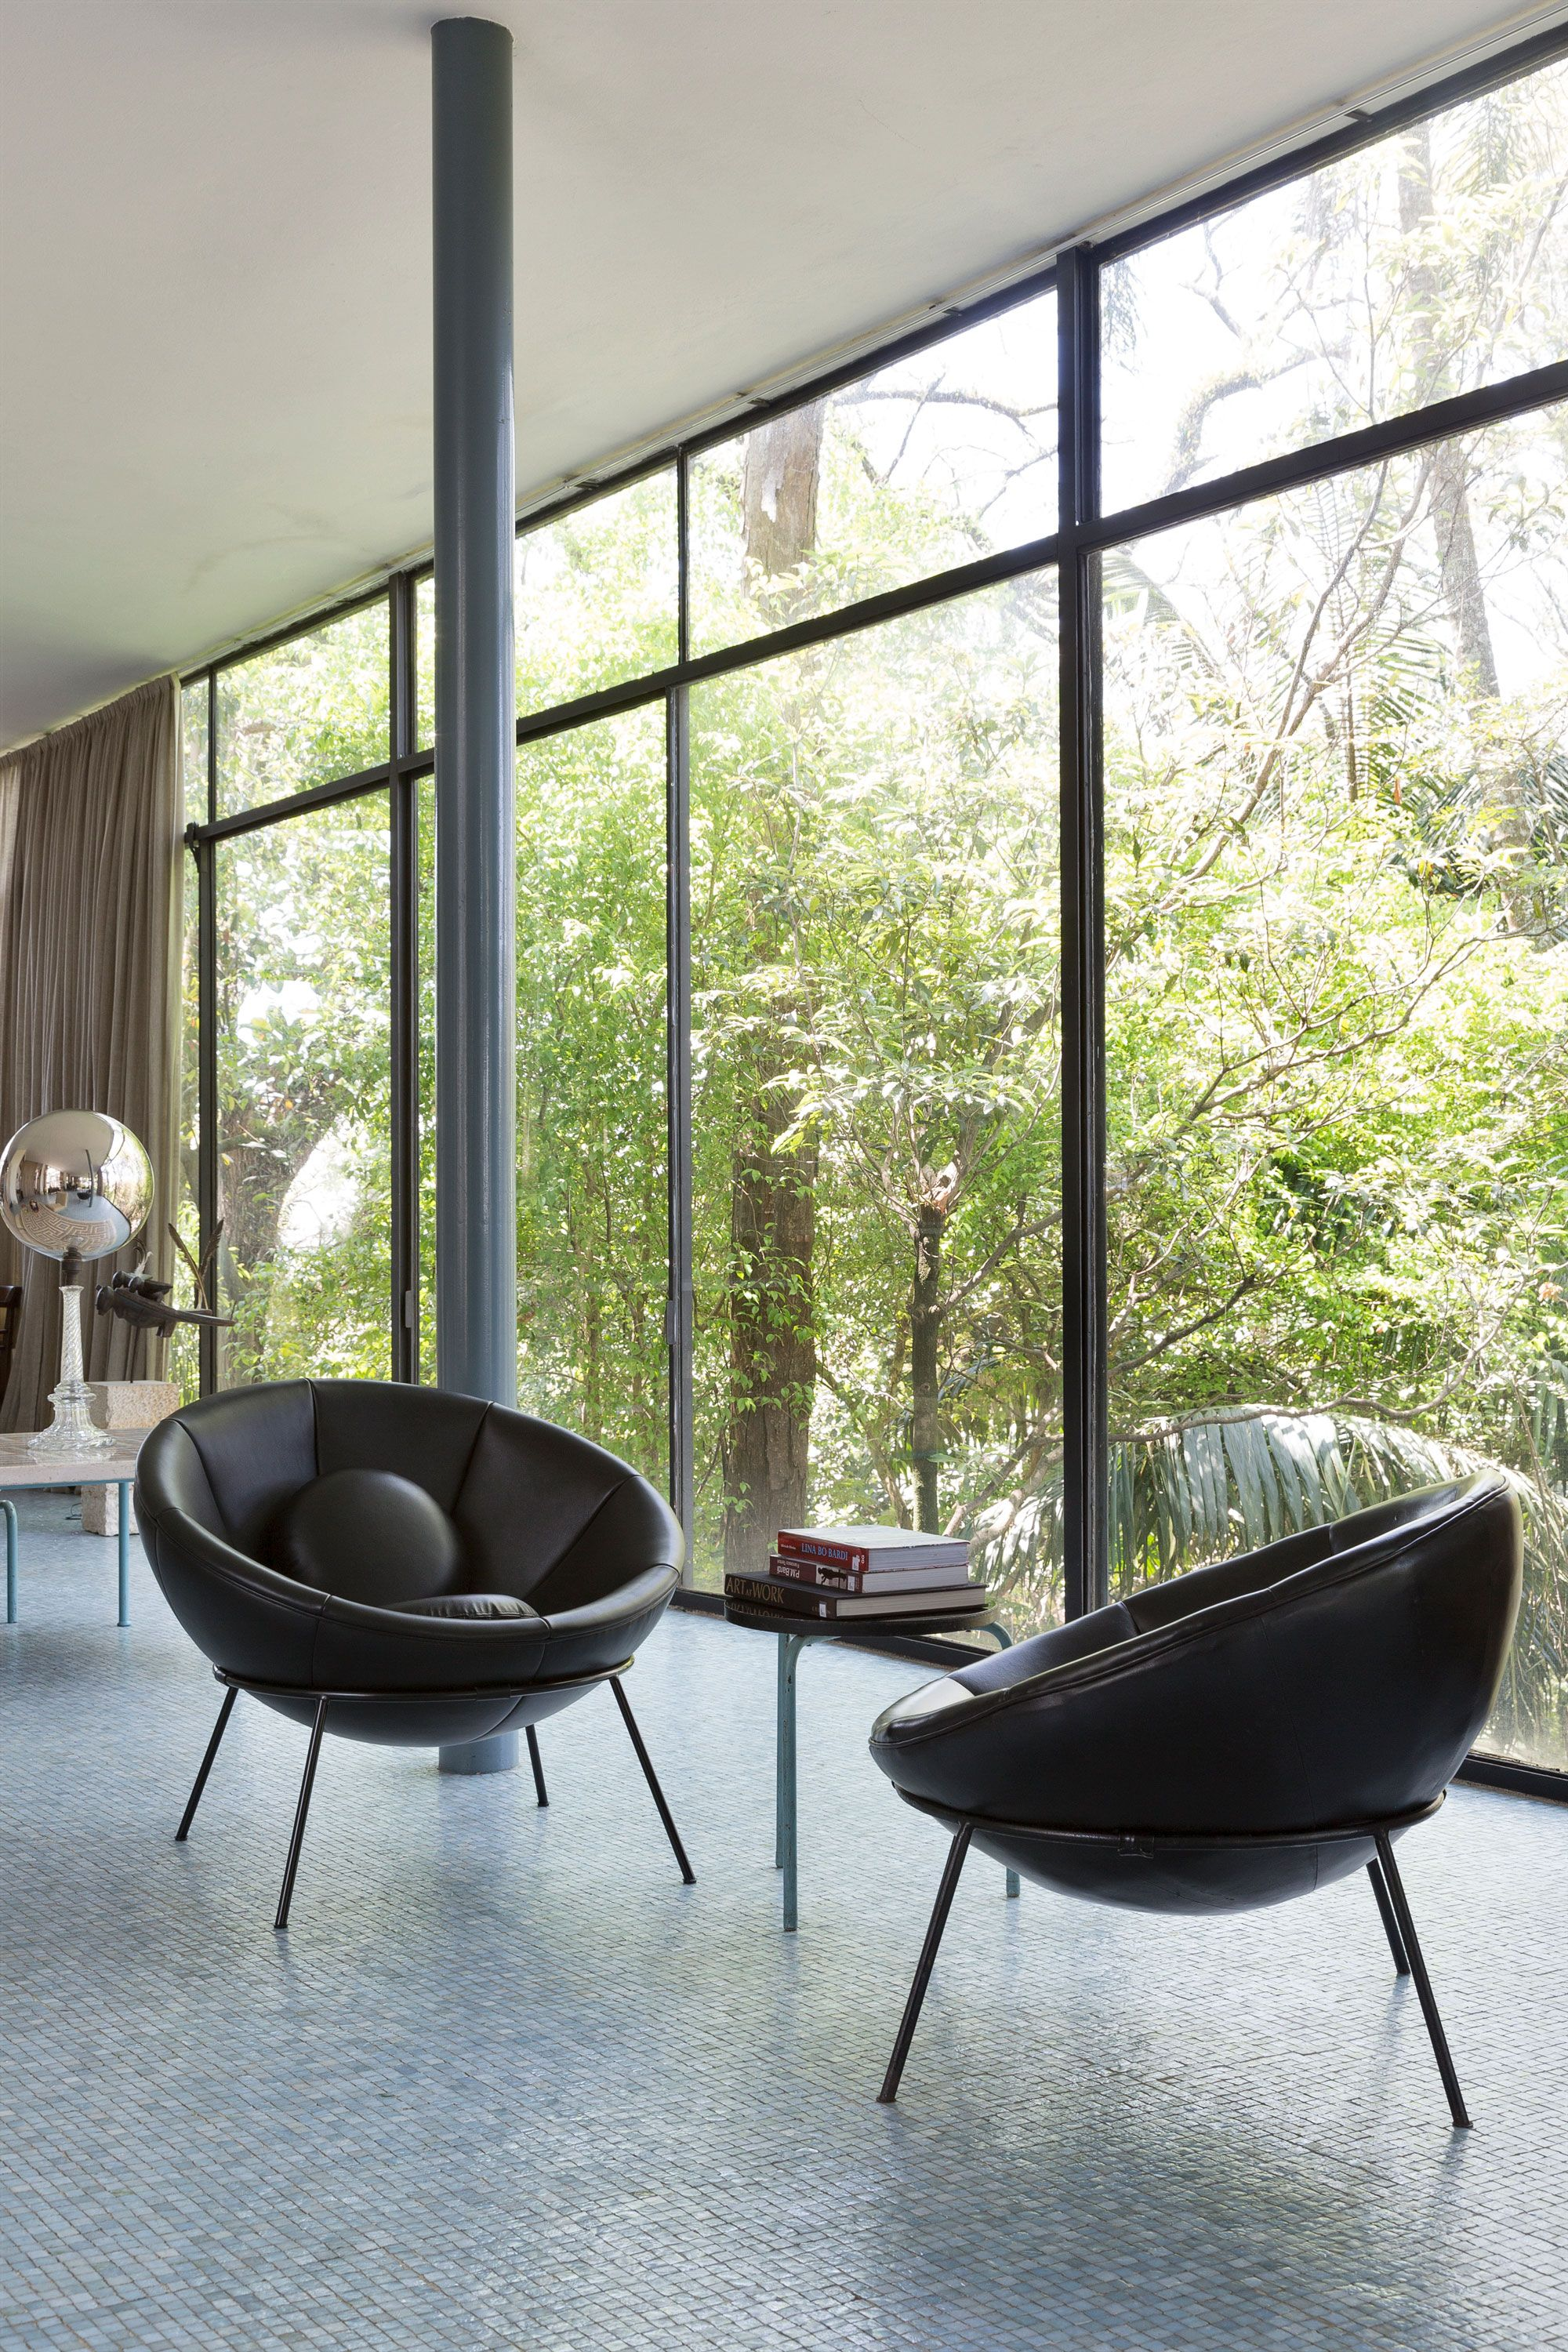 Lina bo bardi bowl chairs installed at her famed glass house